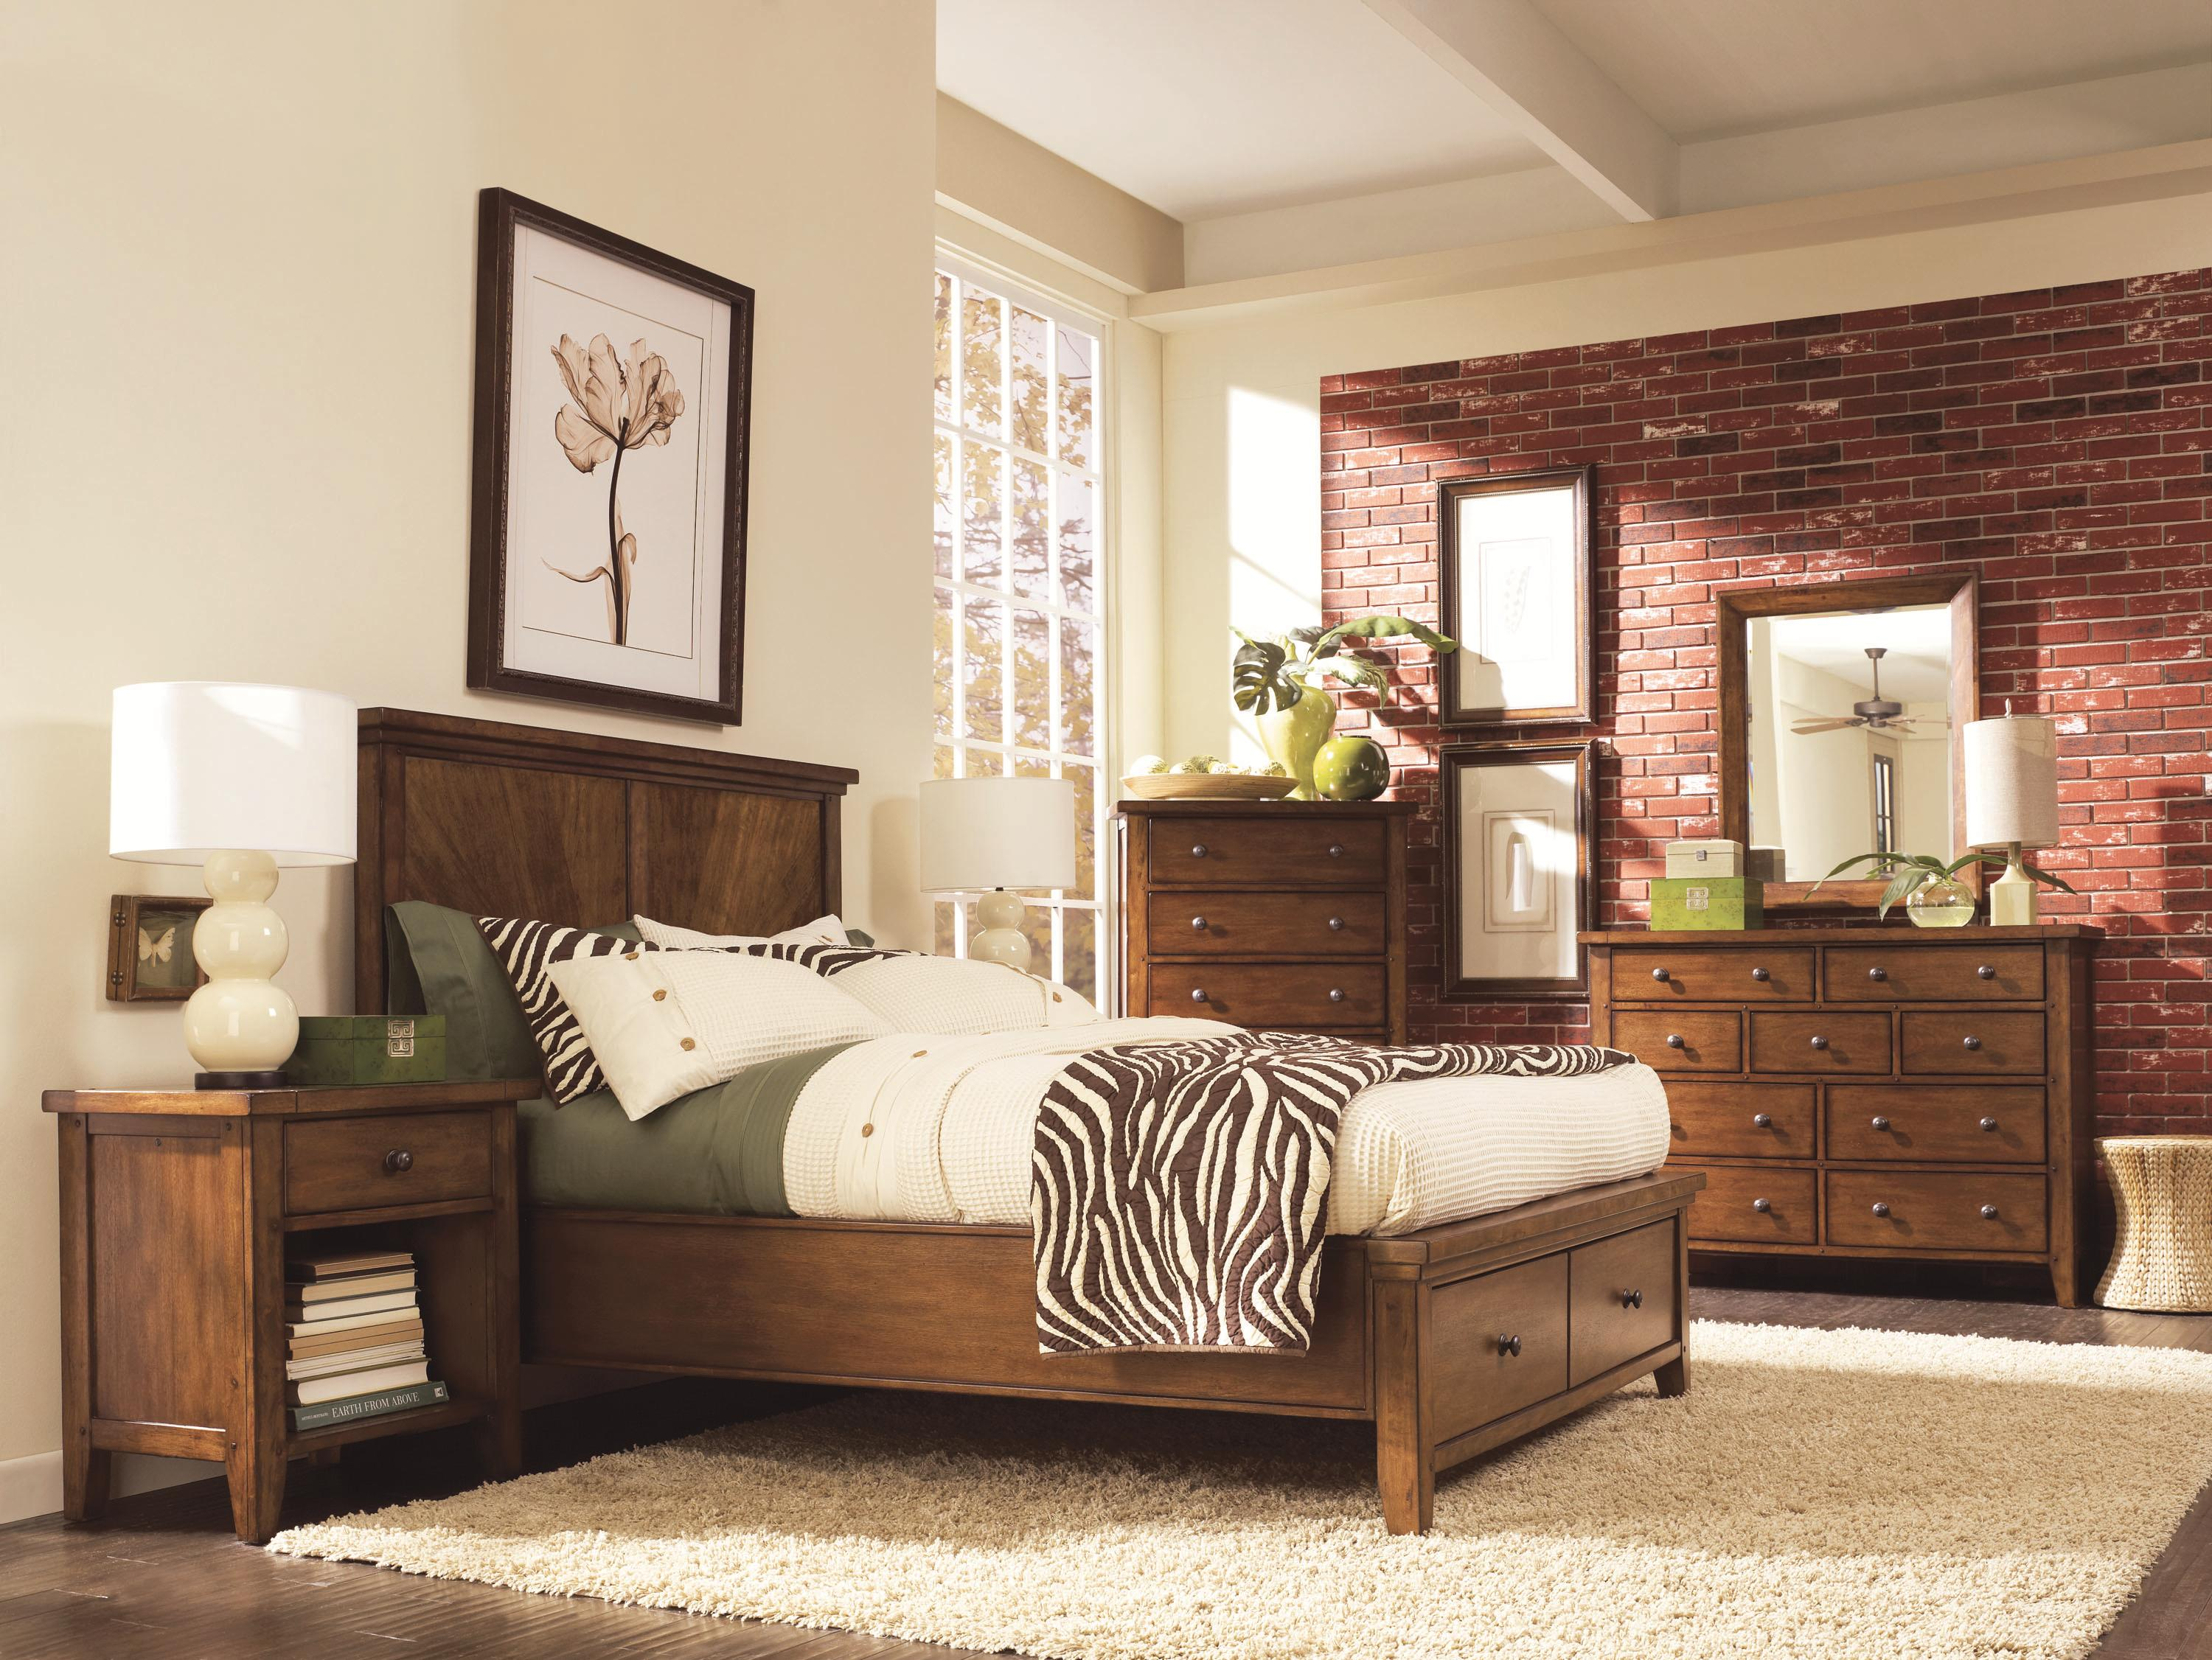 Aspenhome Cross Country King Bedroom Group - Item Number: IMR K Bedroom Group 1